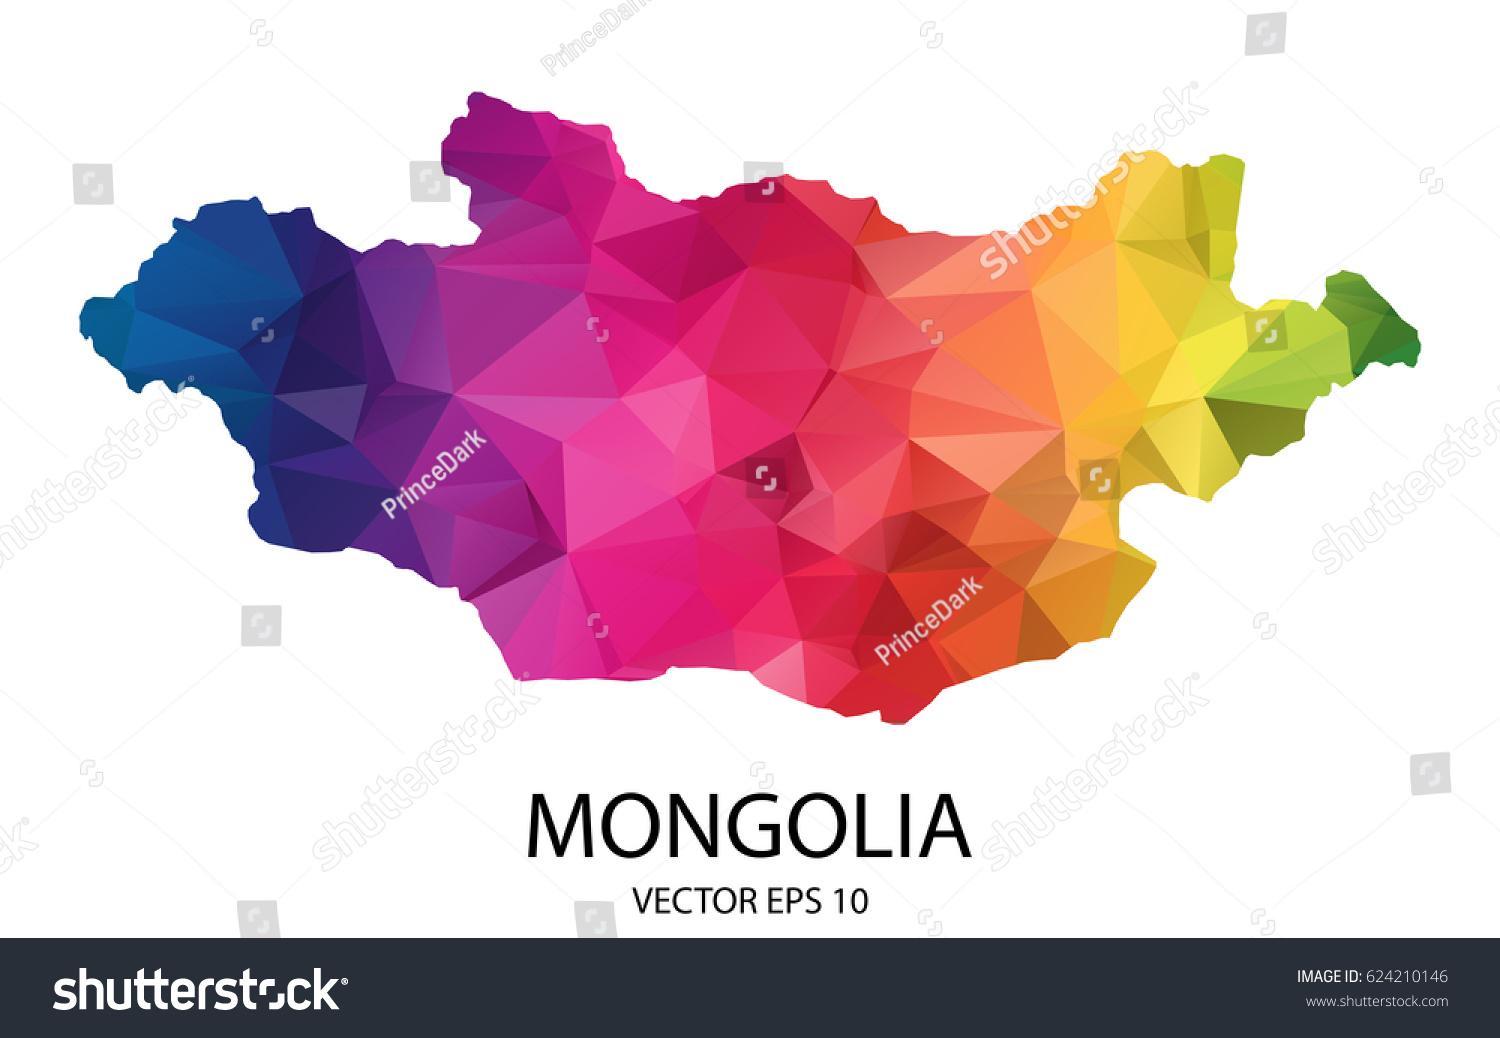 Abstract Polygon Map Vector Illustration Low Stock Vector - Mongolia map vector